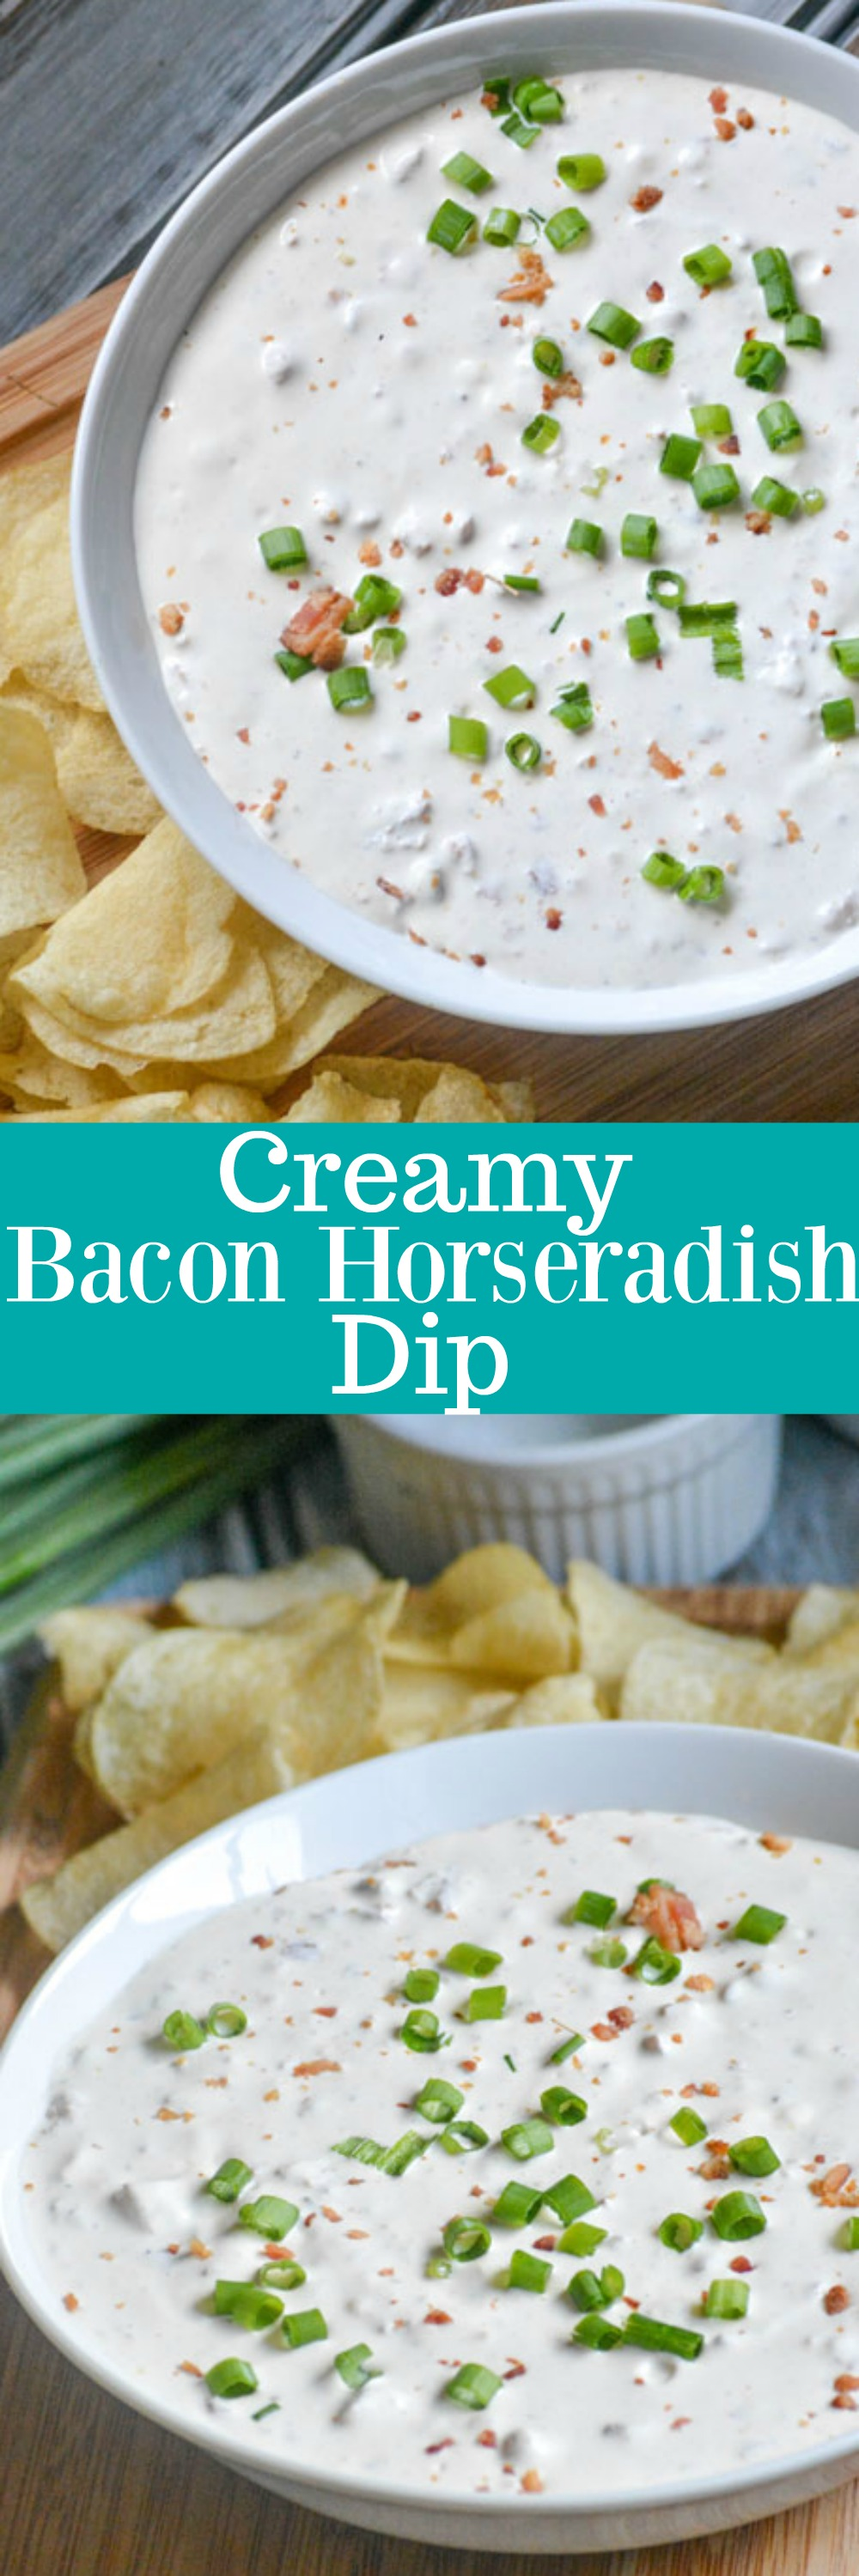 You can never go wrong having a savory dip on hand, or at least the easy ingredients to whip one up, even at the last minute. This Creamy Bacon Horseradish Dip is the perfect appetizer, and ice breaker, for any get together.